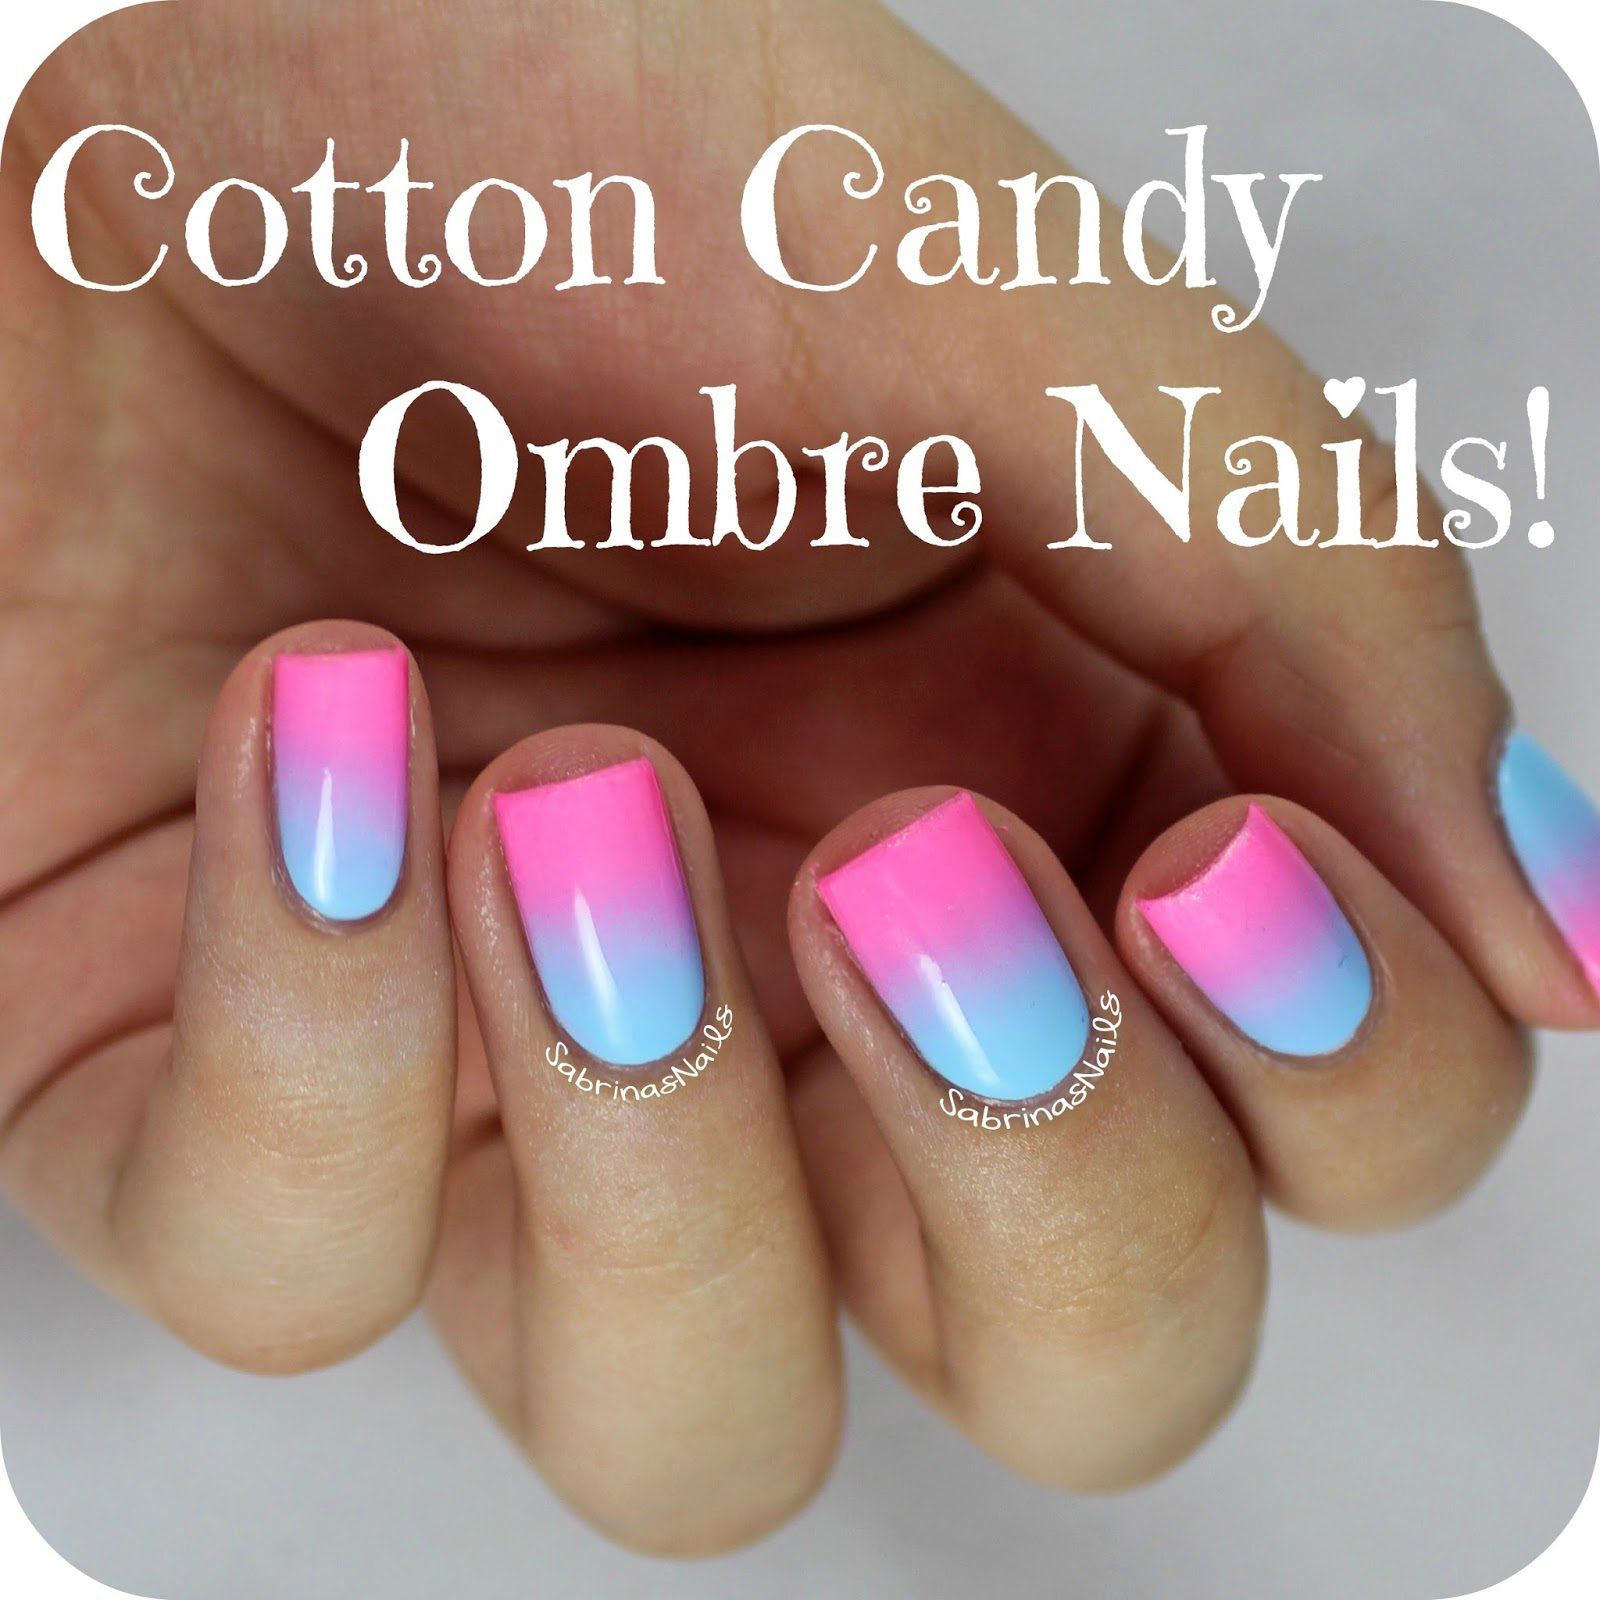 Cotton Candy Nail Color: Sabrinas Nails: Cotton Candy Ombre Nails